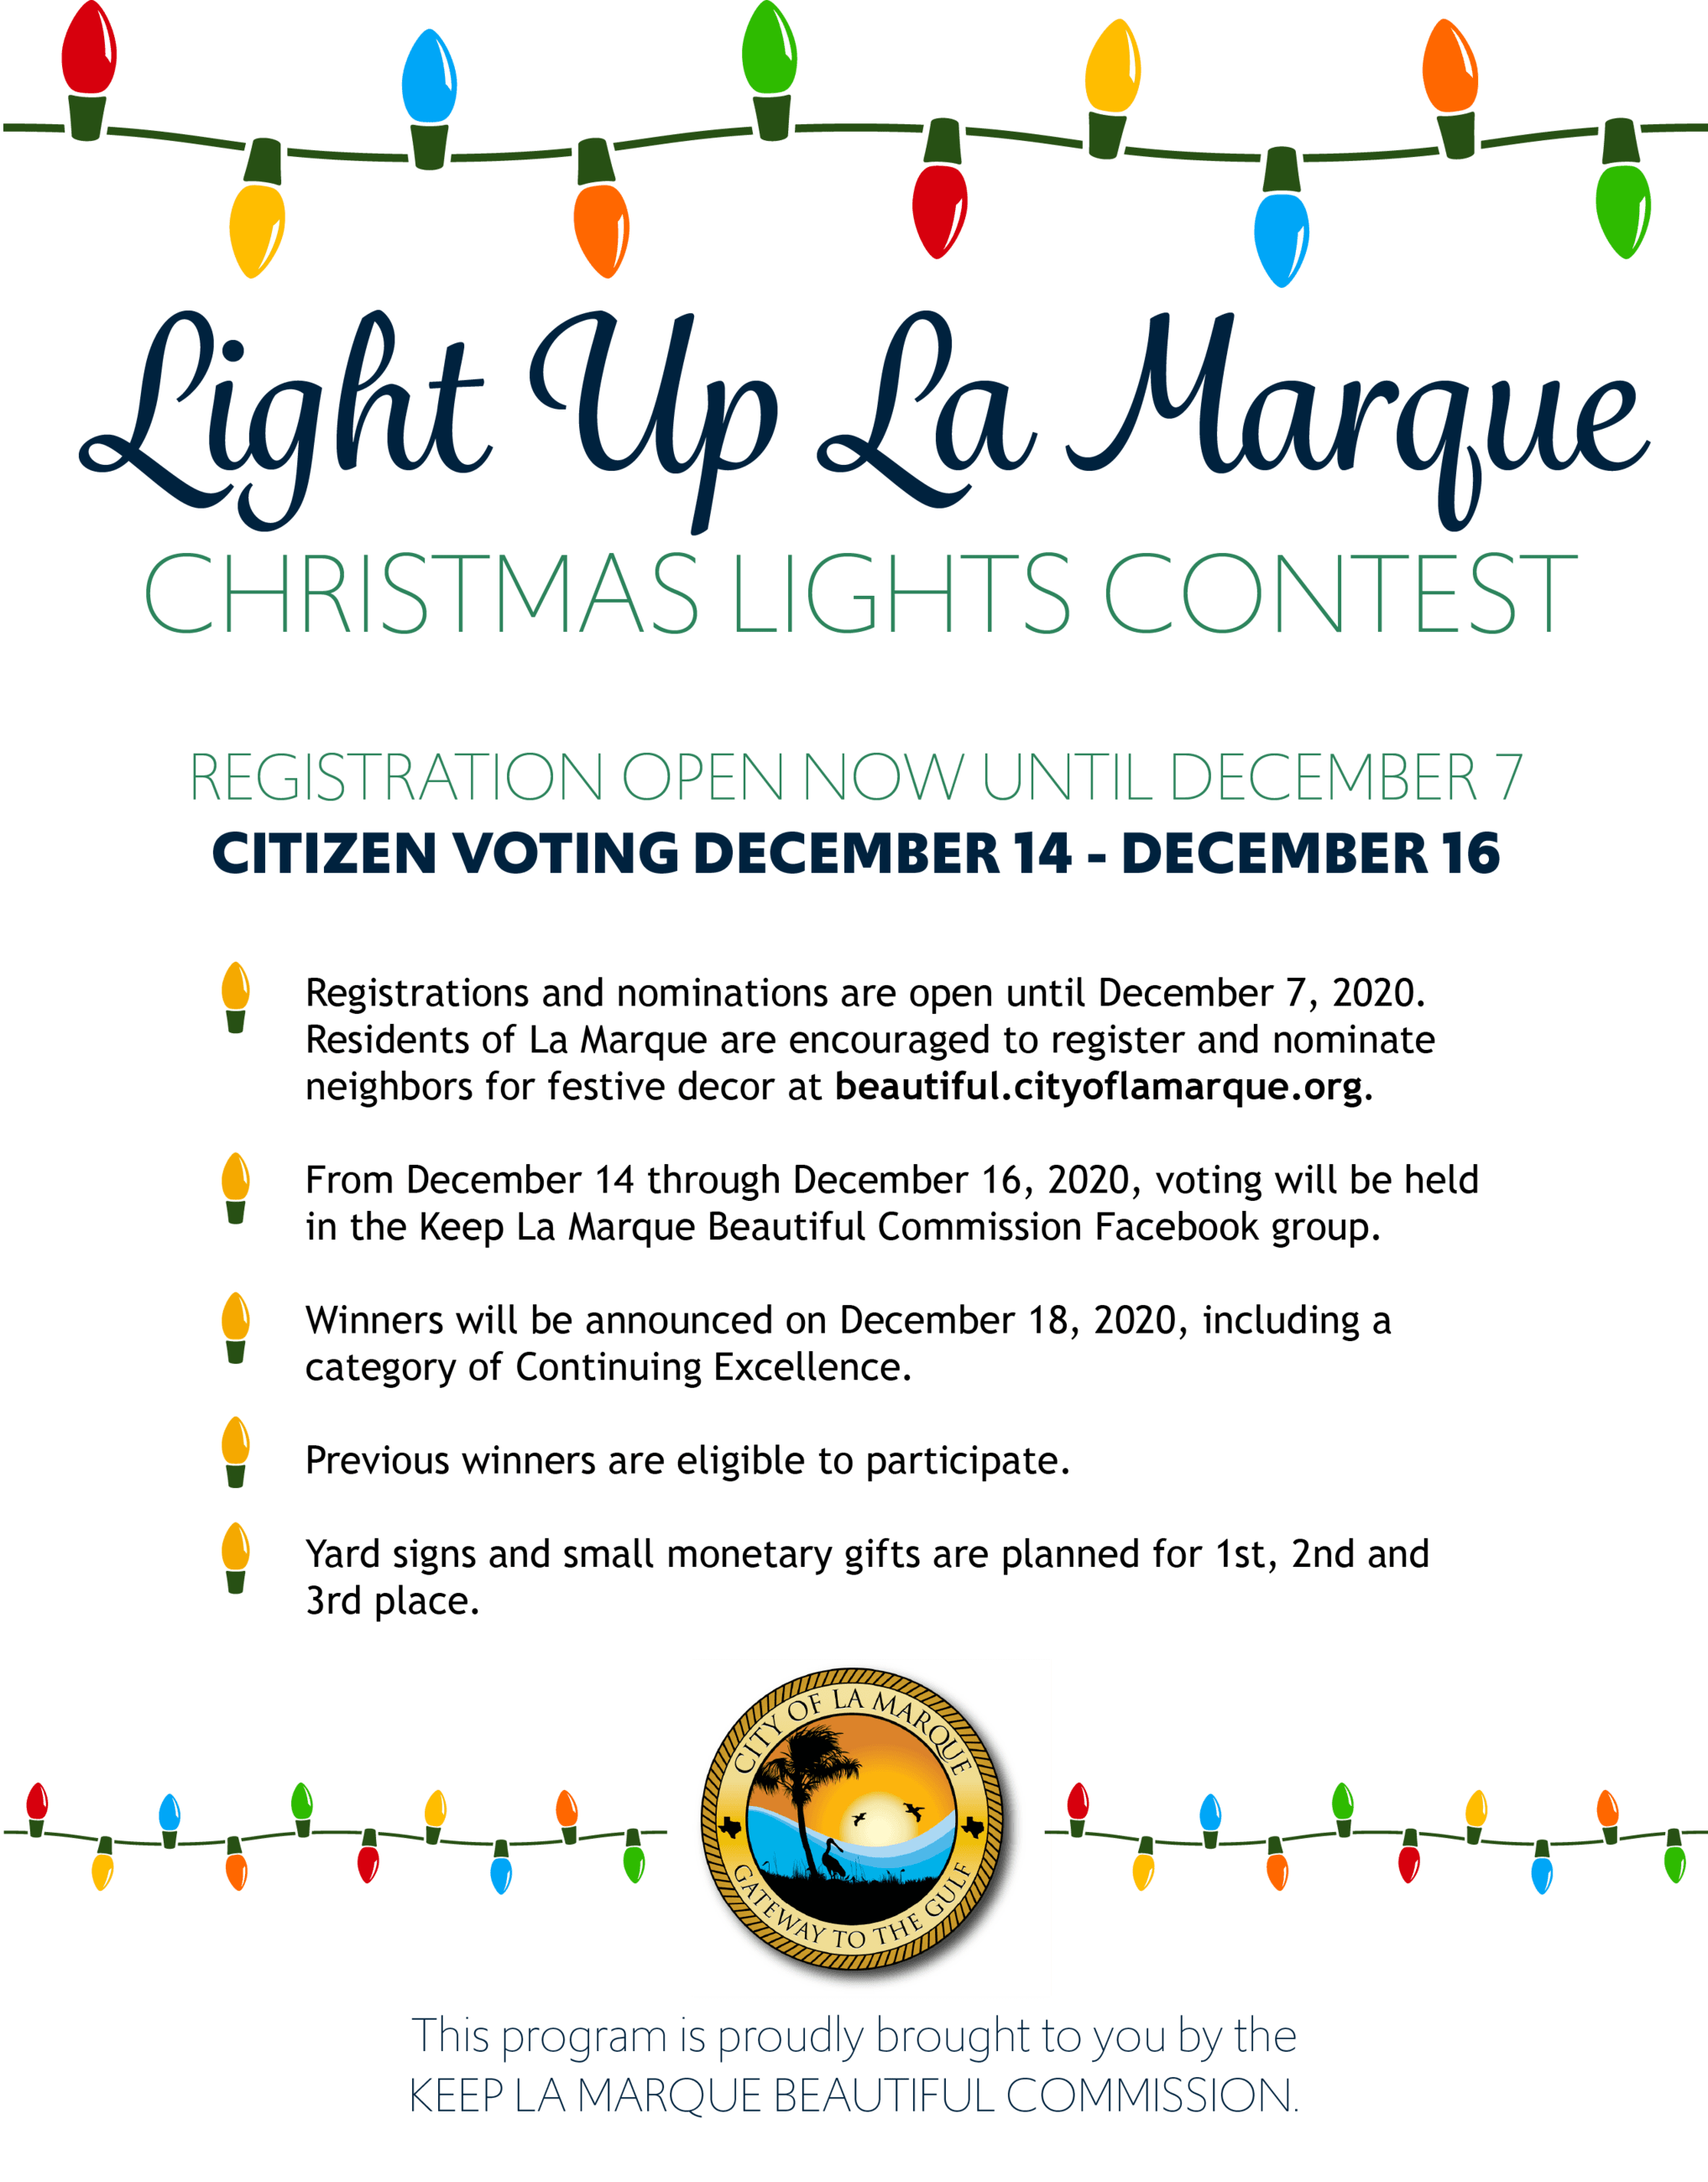 Christmas Lights In La 2020 Christmas Lights Contest | La Marque, TX   Official Website